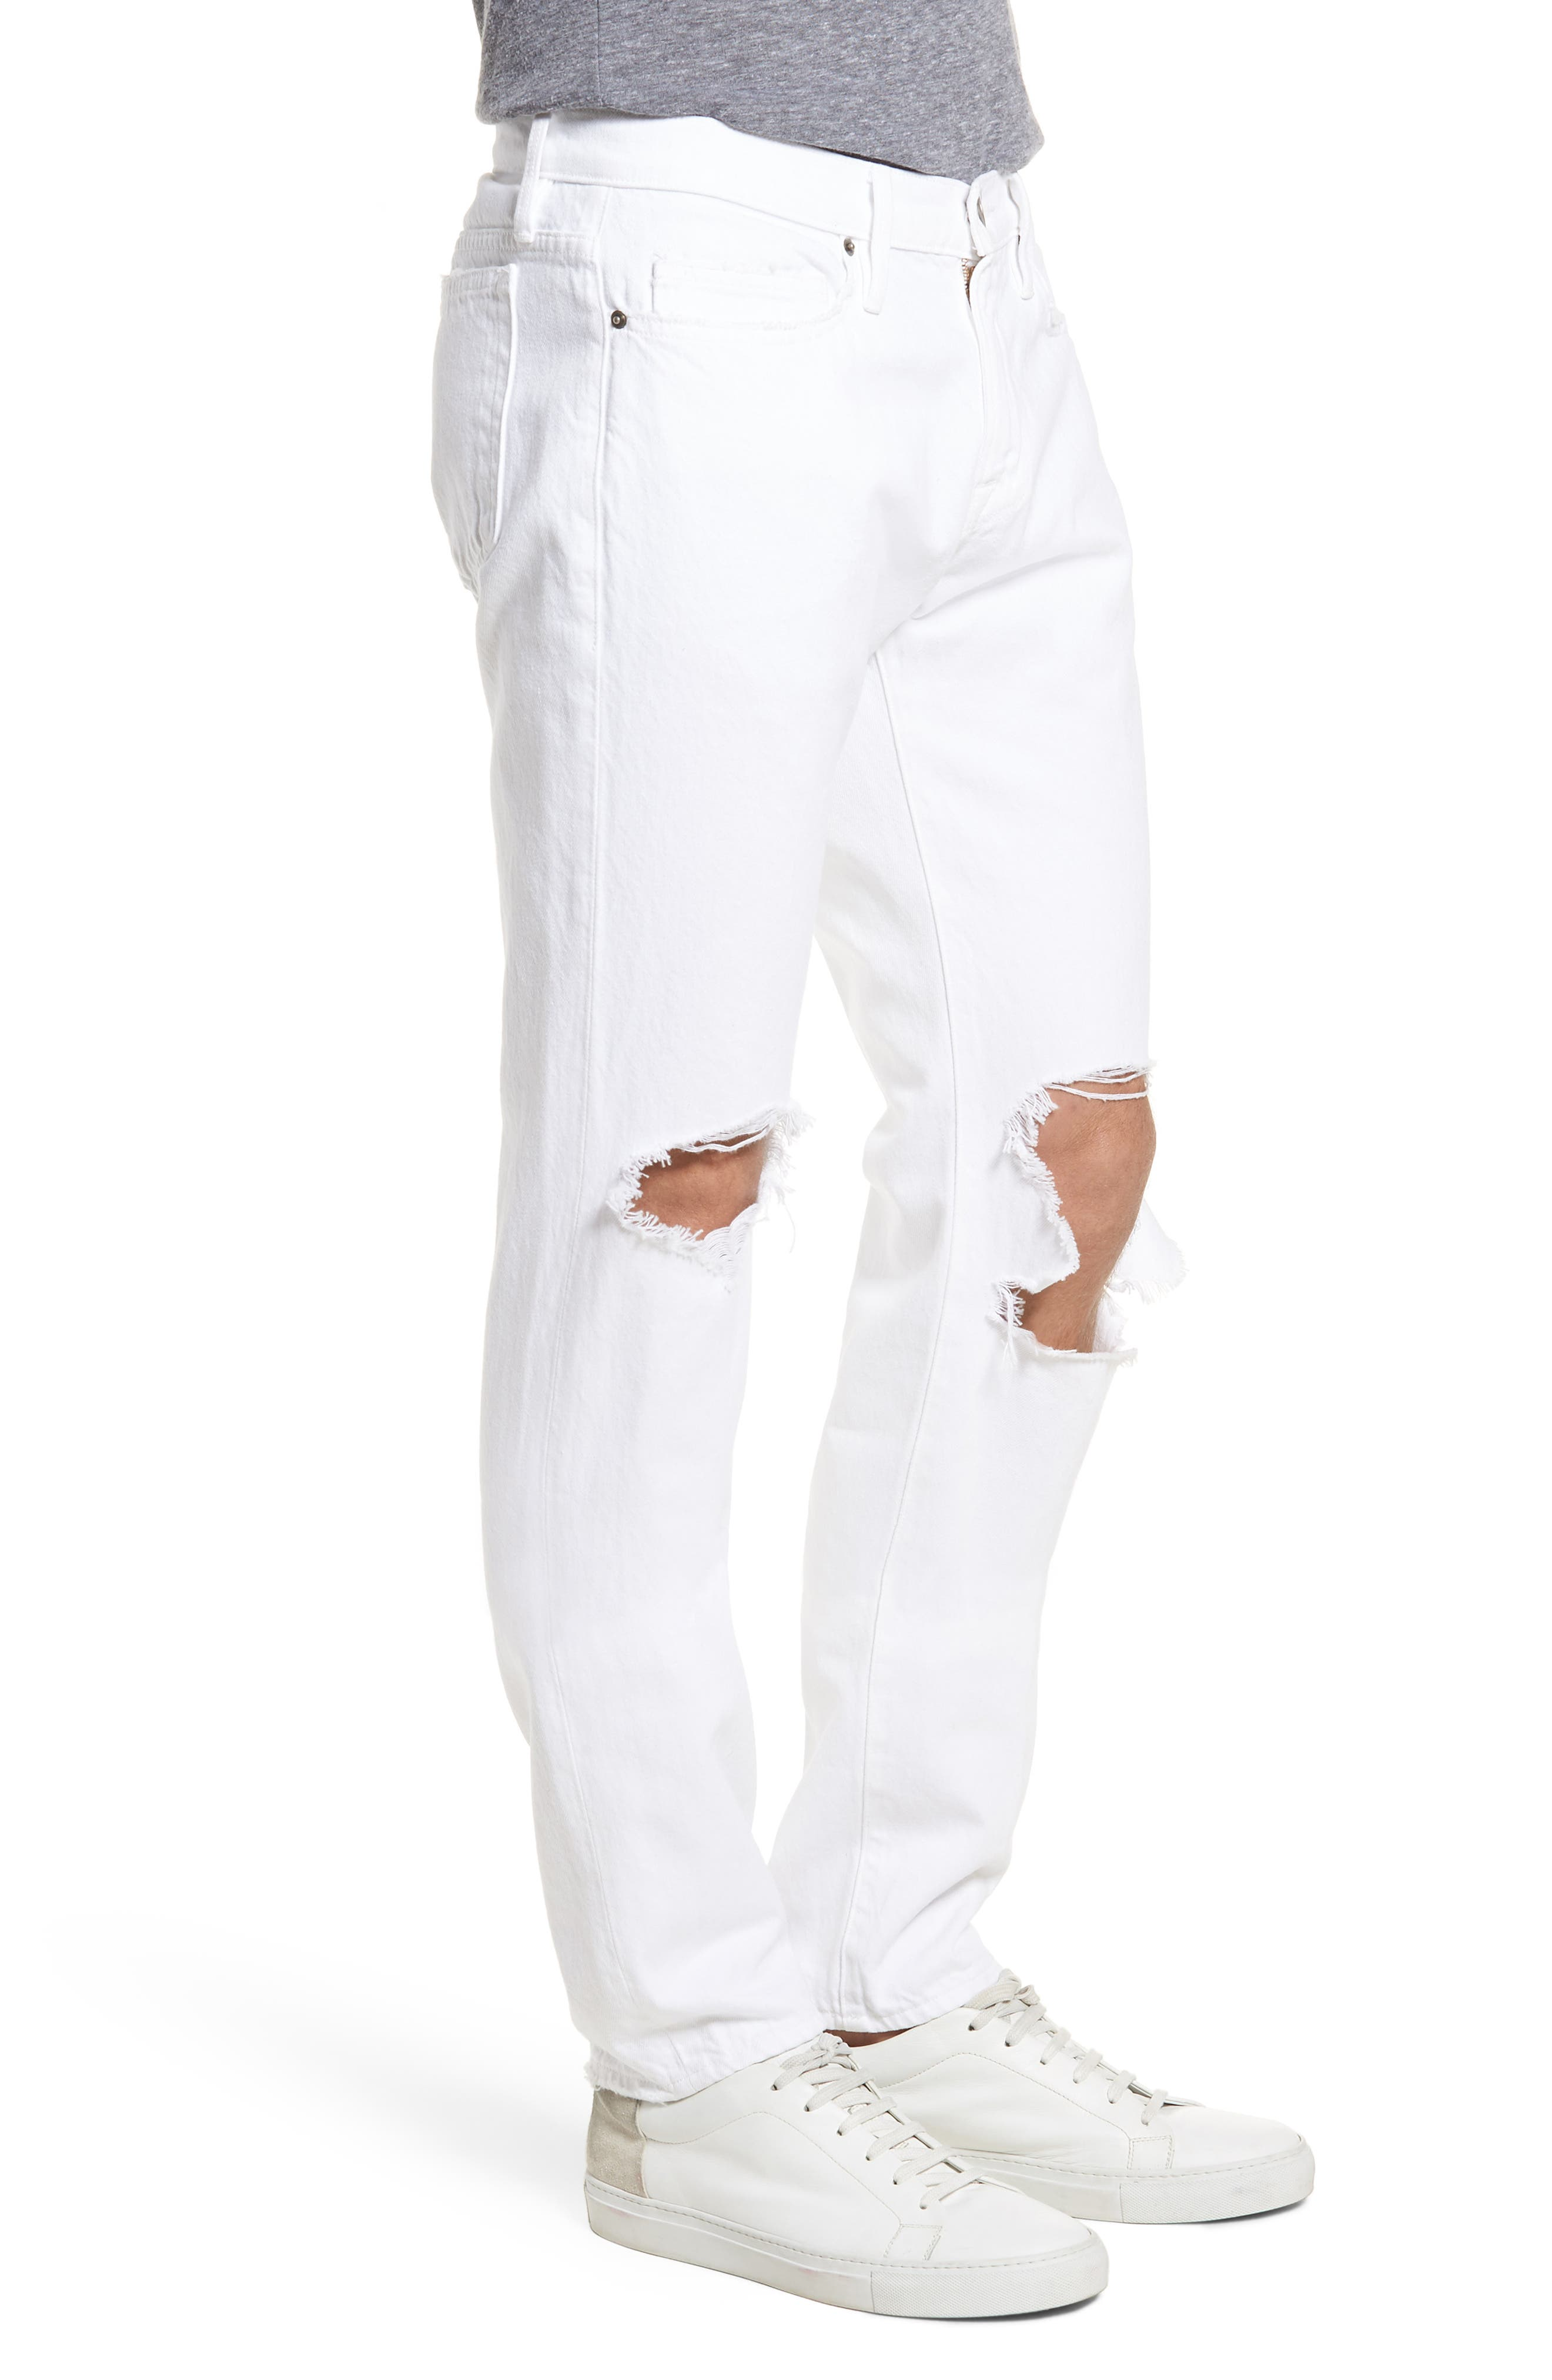 L'Homme Skinny Fit Jeans,                             Alternate thumbnail 3, color,                             White Out